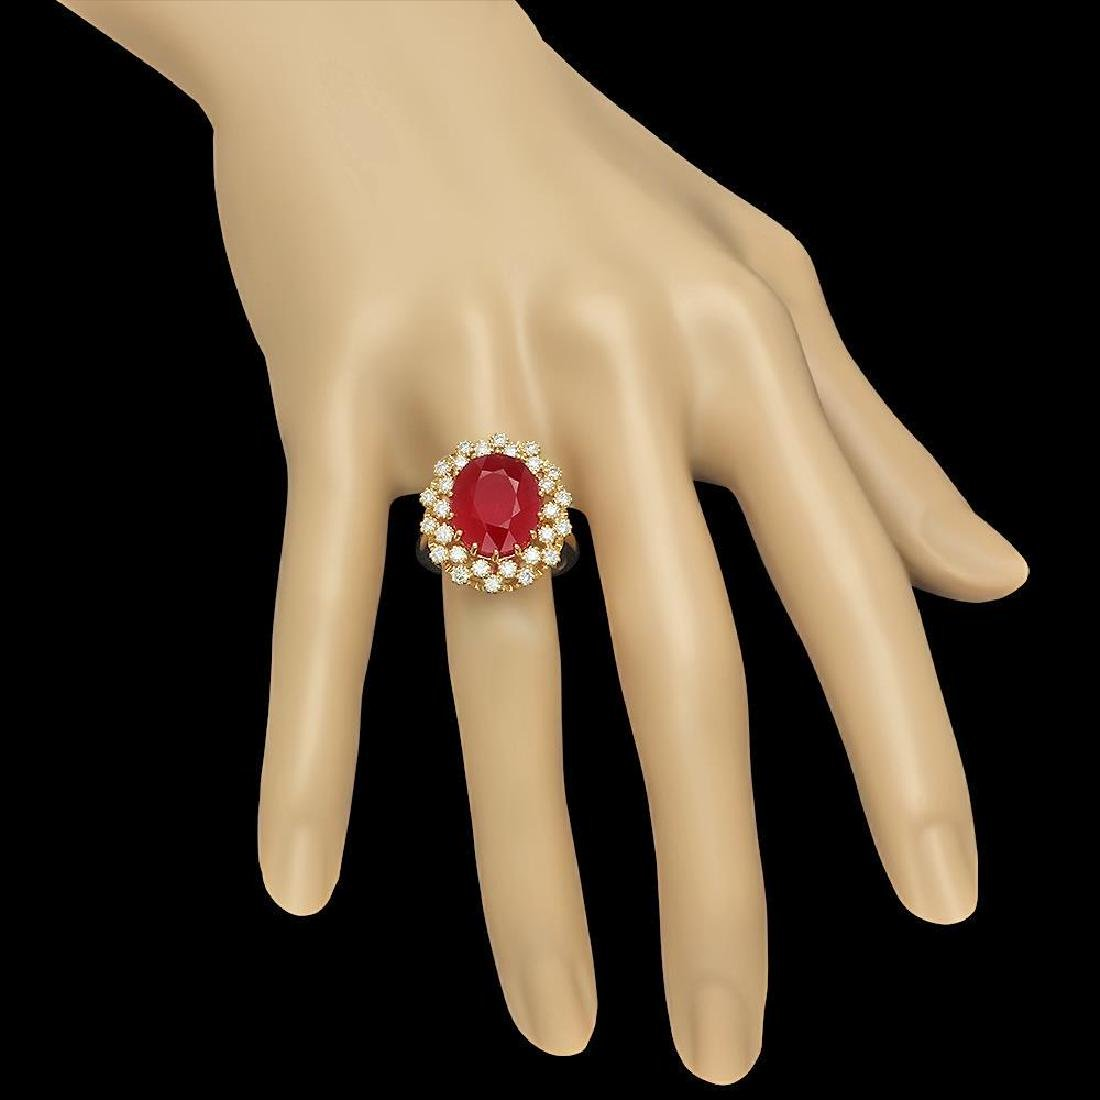 14K Gold 9.55ct Ruby 0.98ct Diamond Ring - 3